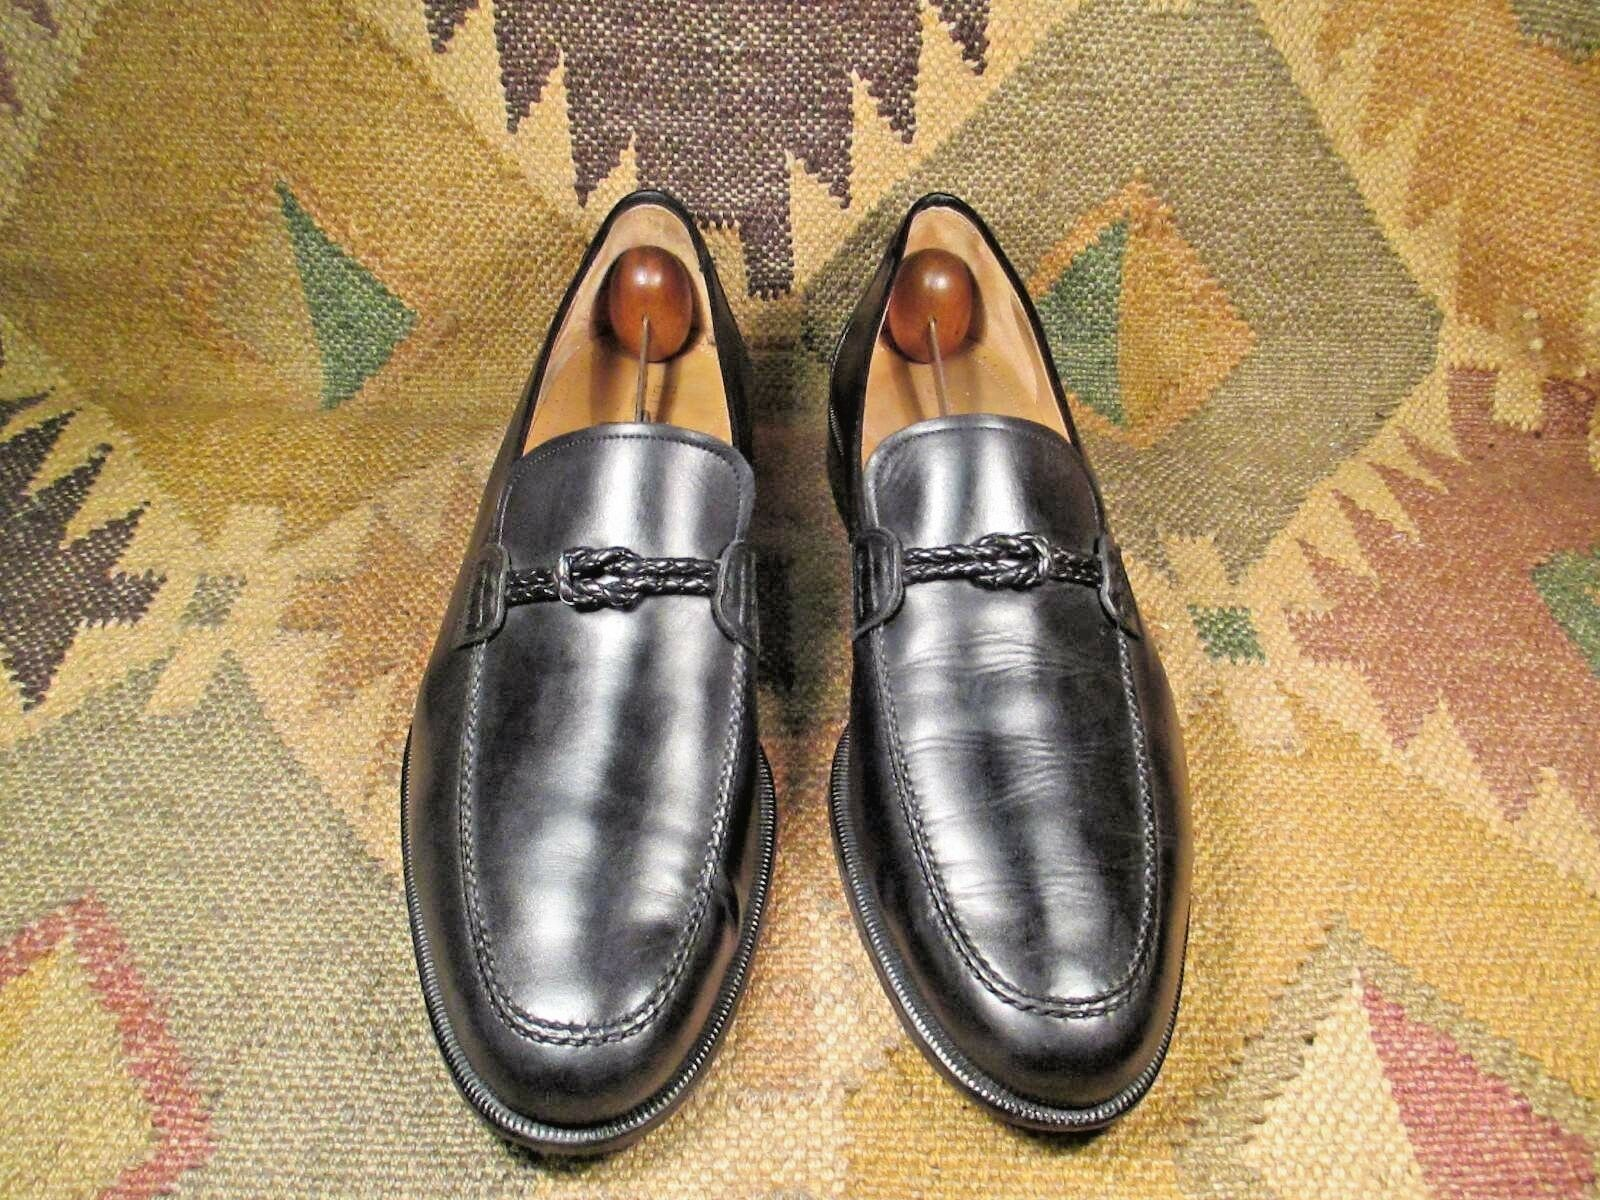 E.T. WRIGHT MASTERS COLLECTION BLACK LEATHER LOAFERS SIZE 13 B MADE IN SPAIN